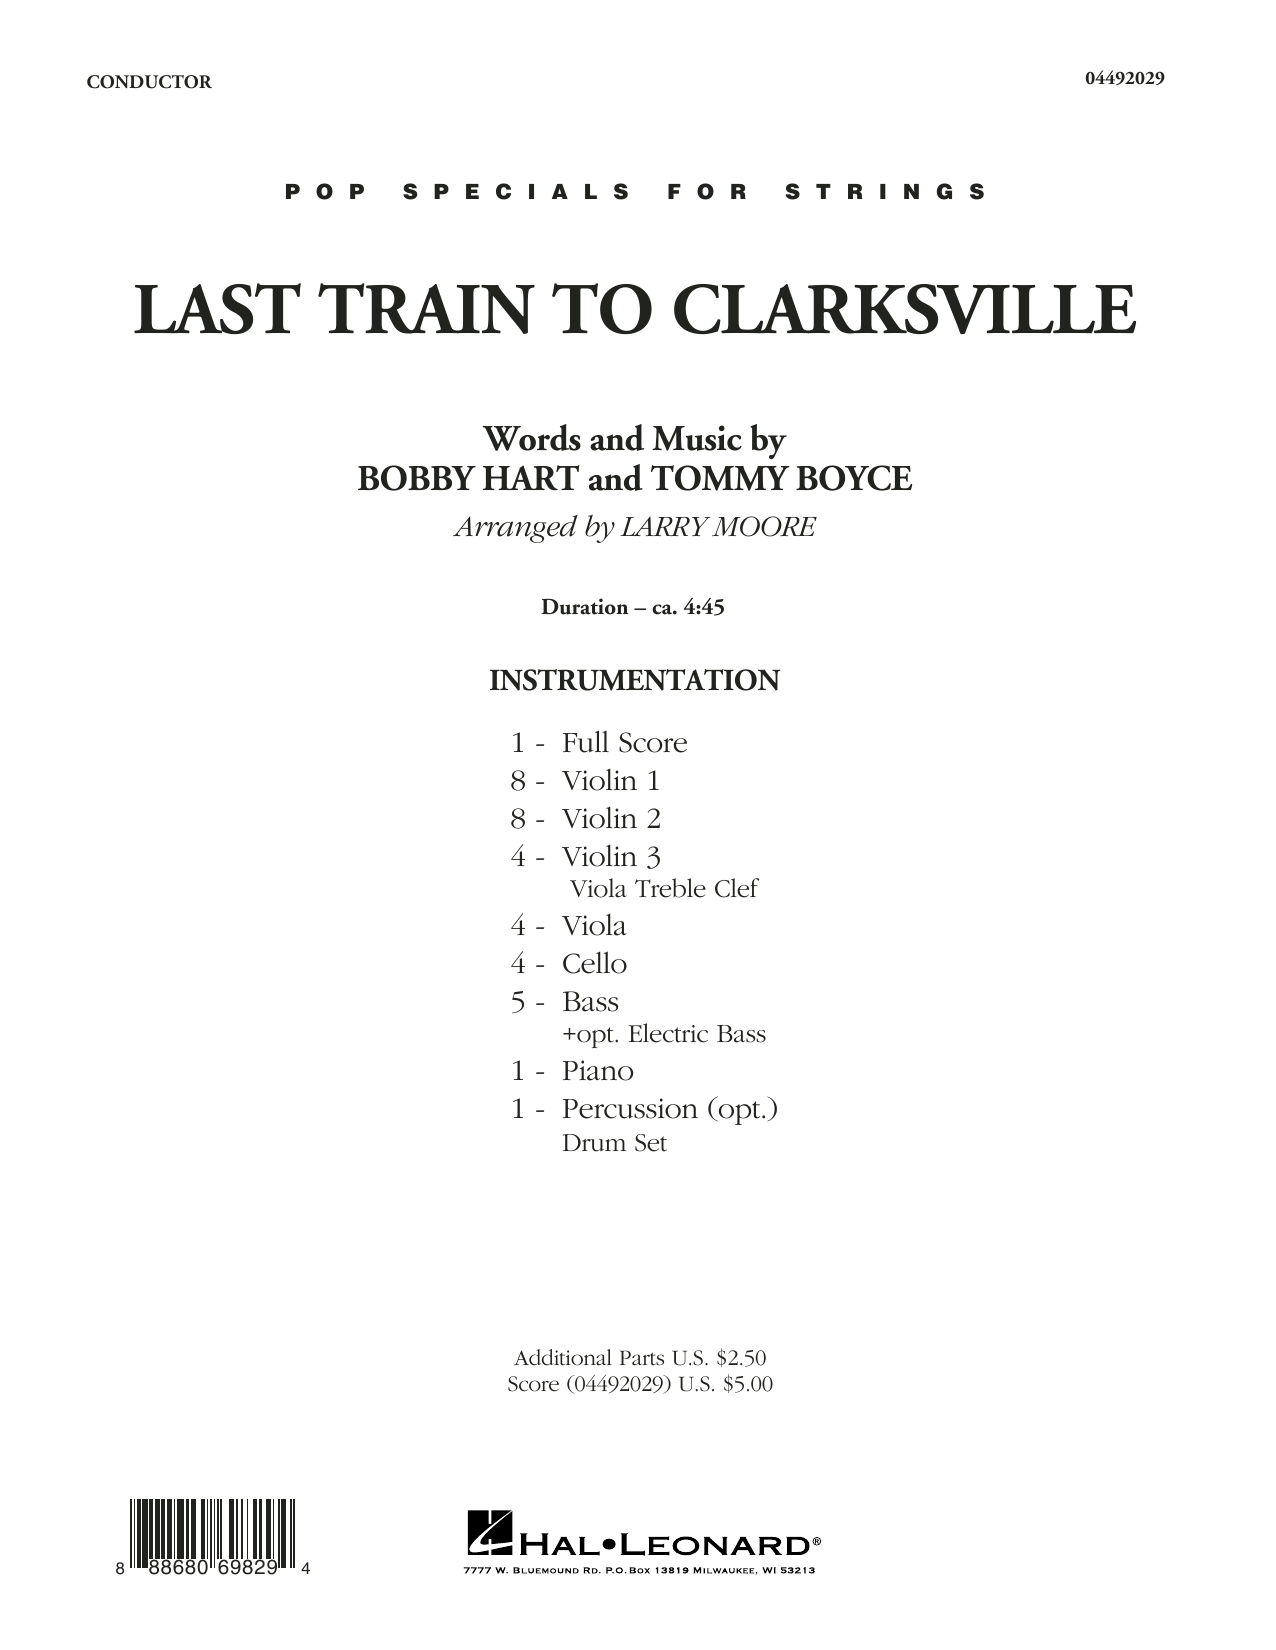 Last Train to Clarksville (COMPLETE) sheet music for orchestra by Larry Moore, The Monkees and Tommy Boyce. Score Image Preview.